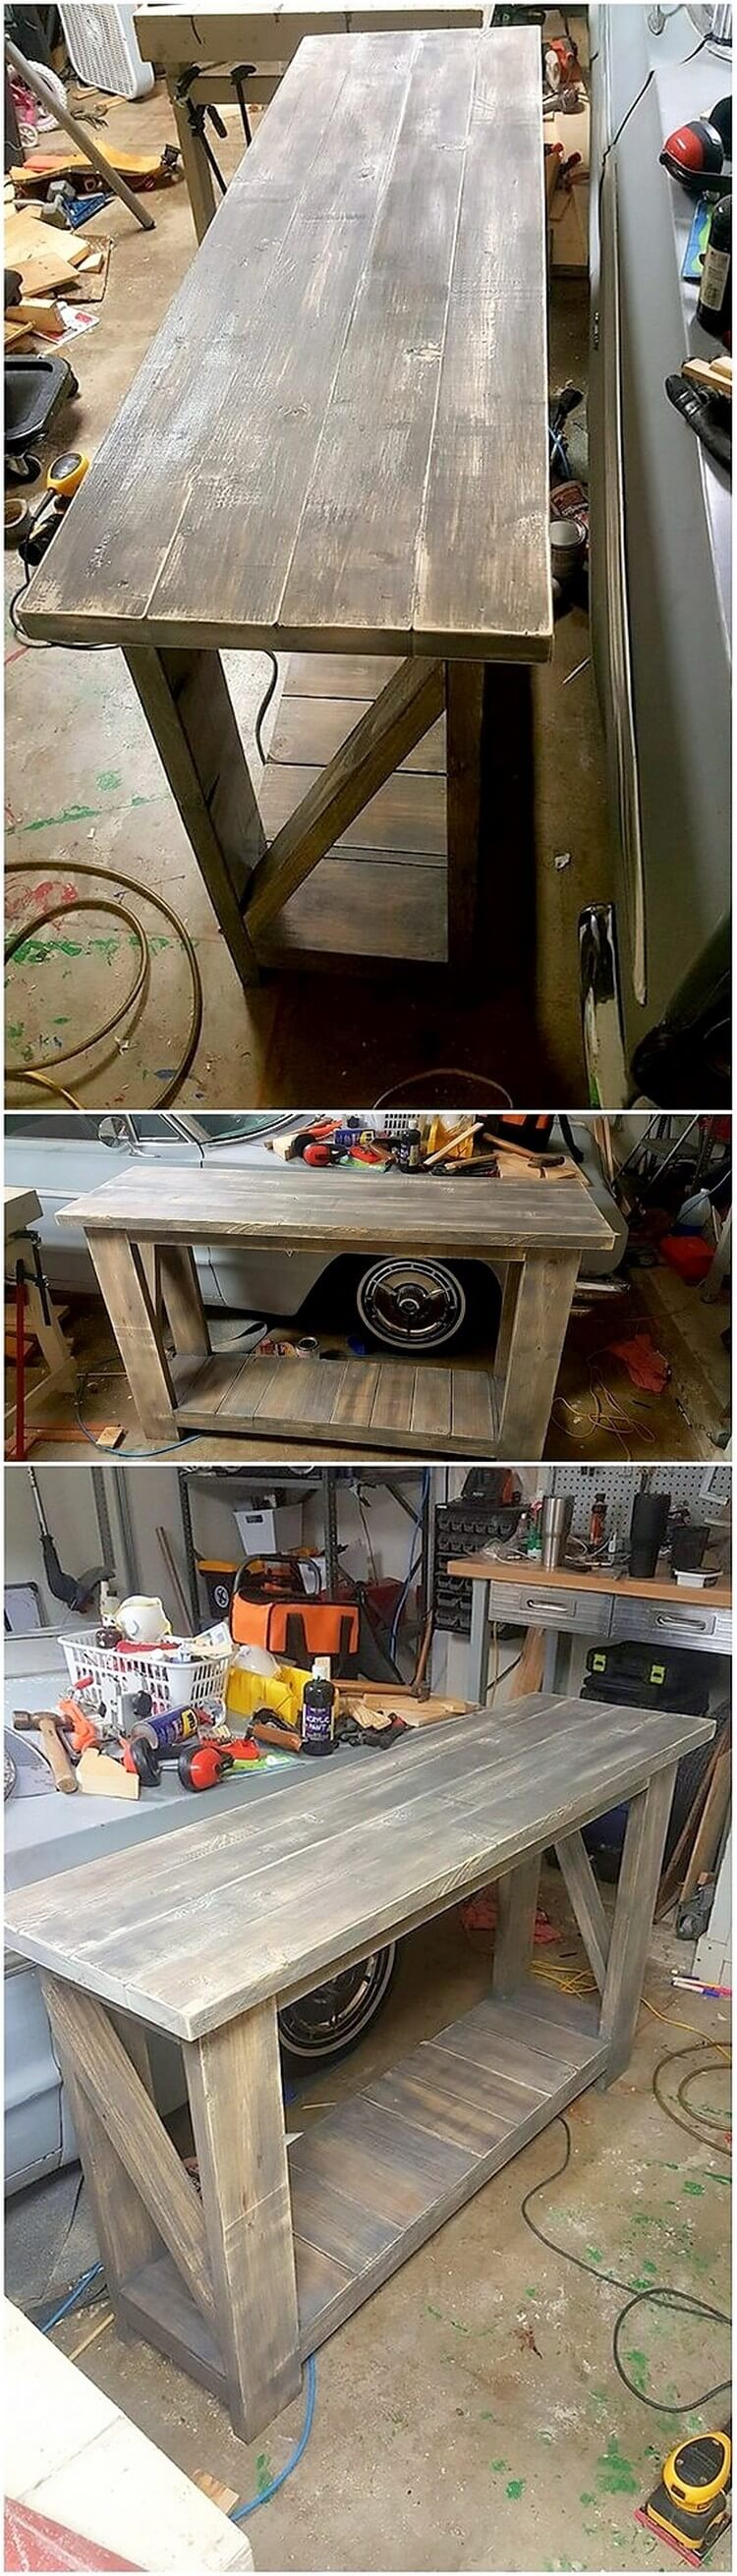 Recycled Pallet Table (2)